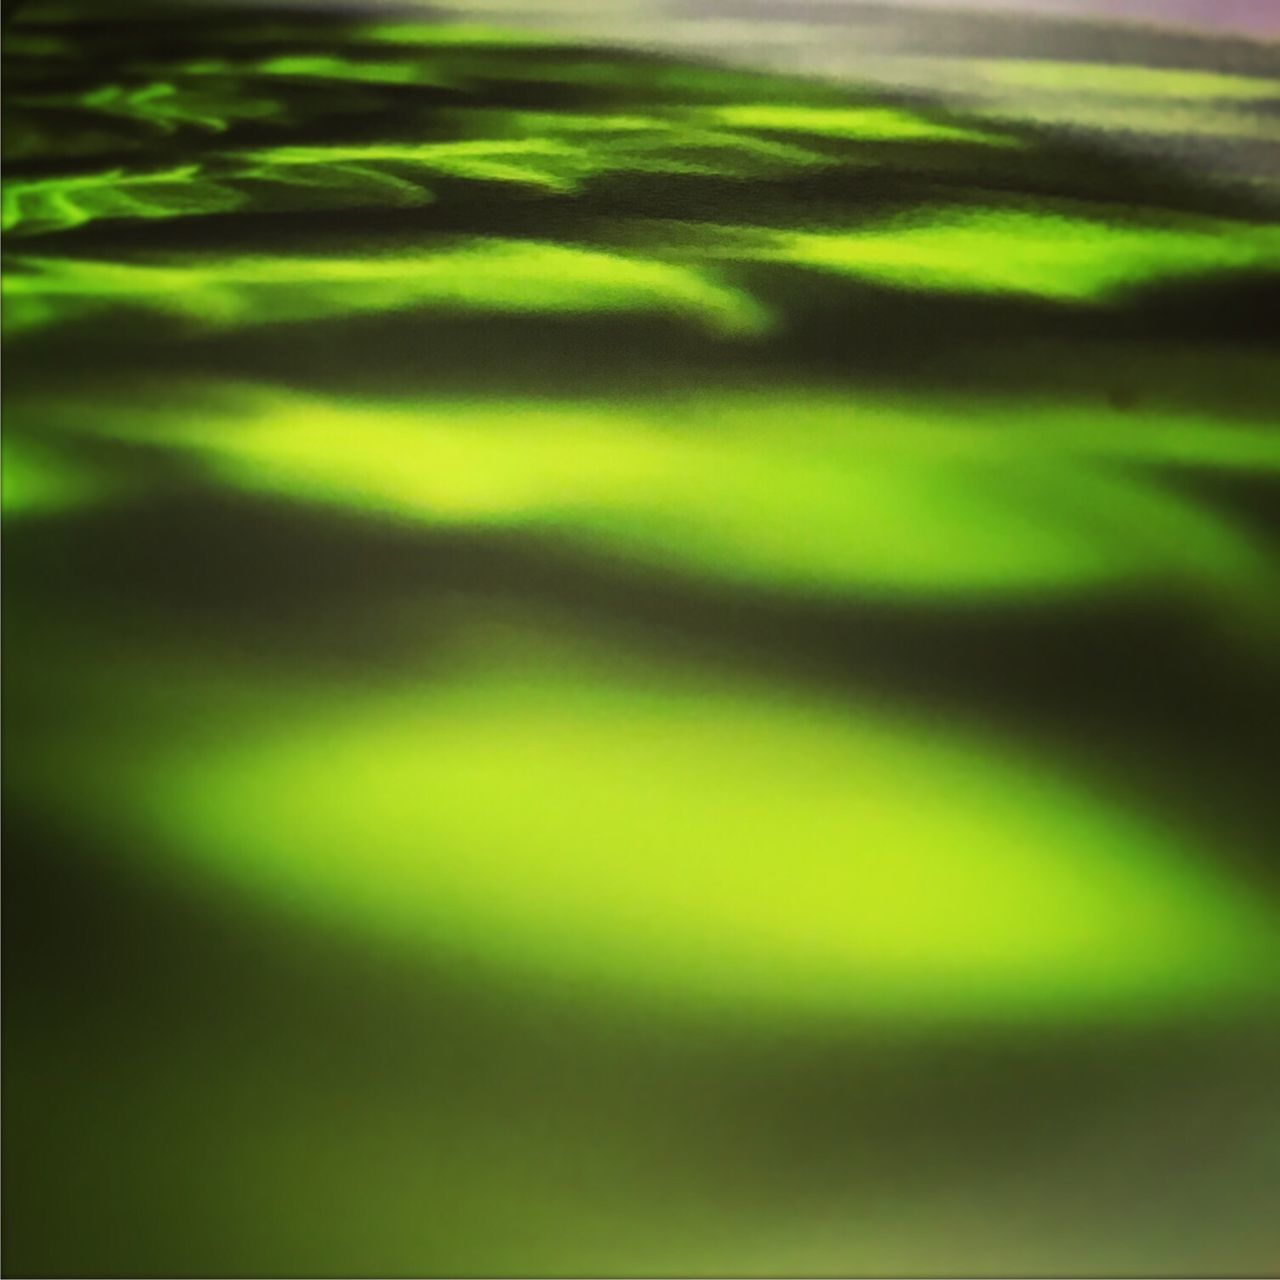 Abstract Green Color Close-up Scenics Green Backgrounds